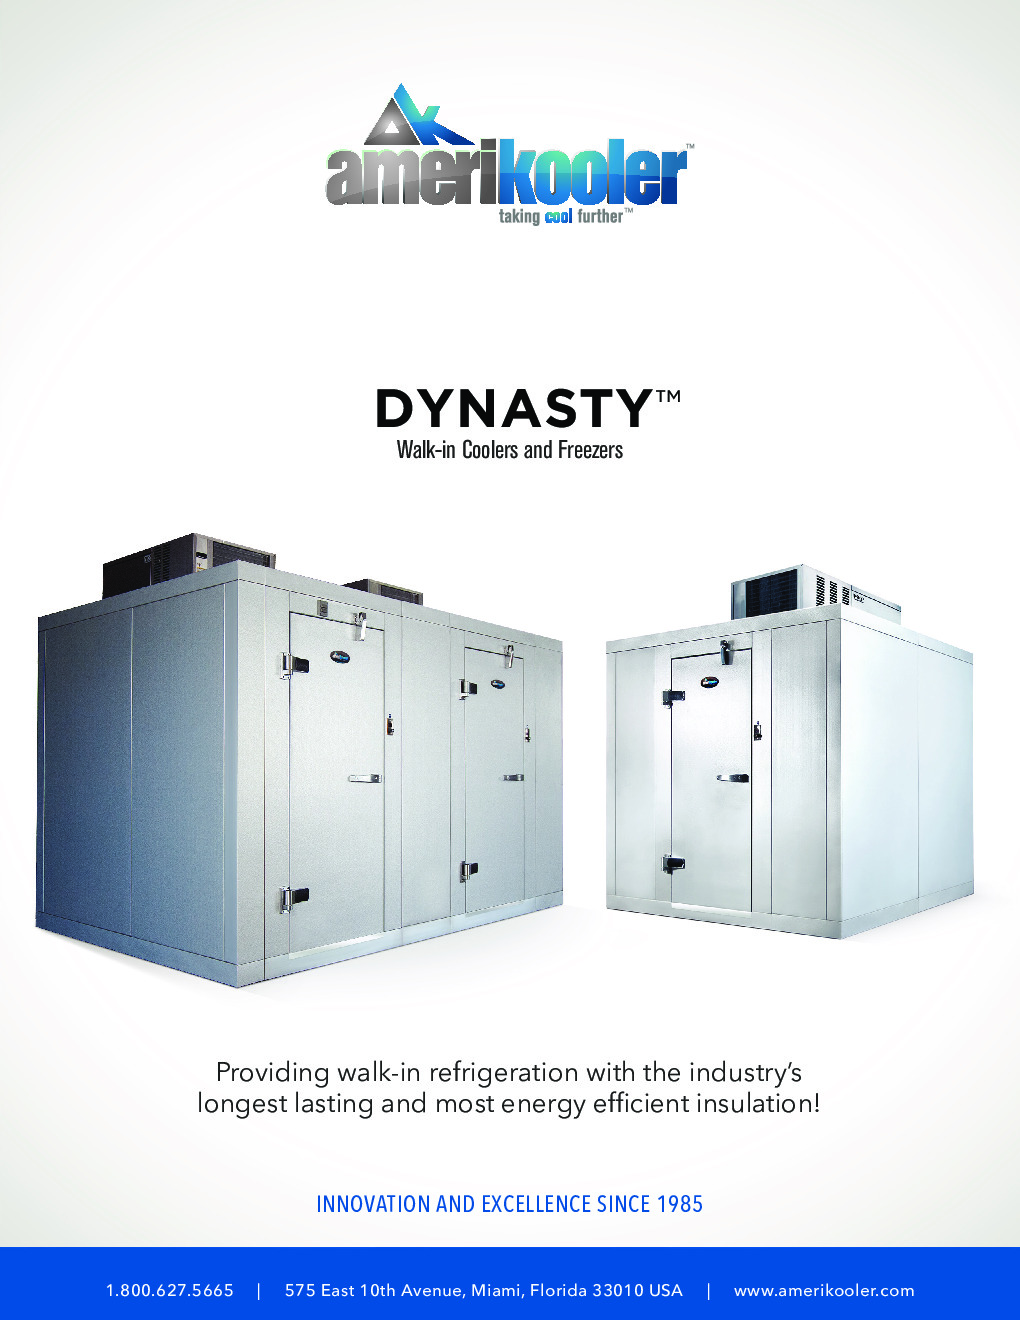 AmeriKooler DW081877F-5/13 Indoor 8' X 18' Walk-In, 13' L Cooler with Floor and 5' L Freezer, Box Only